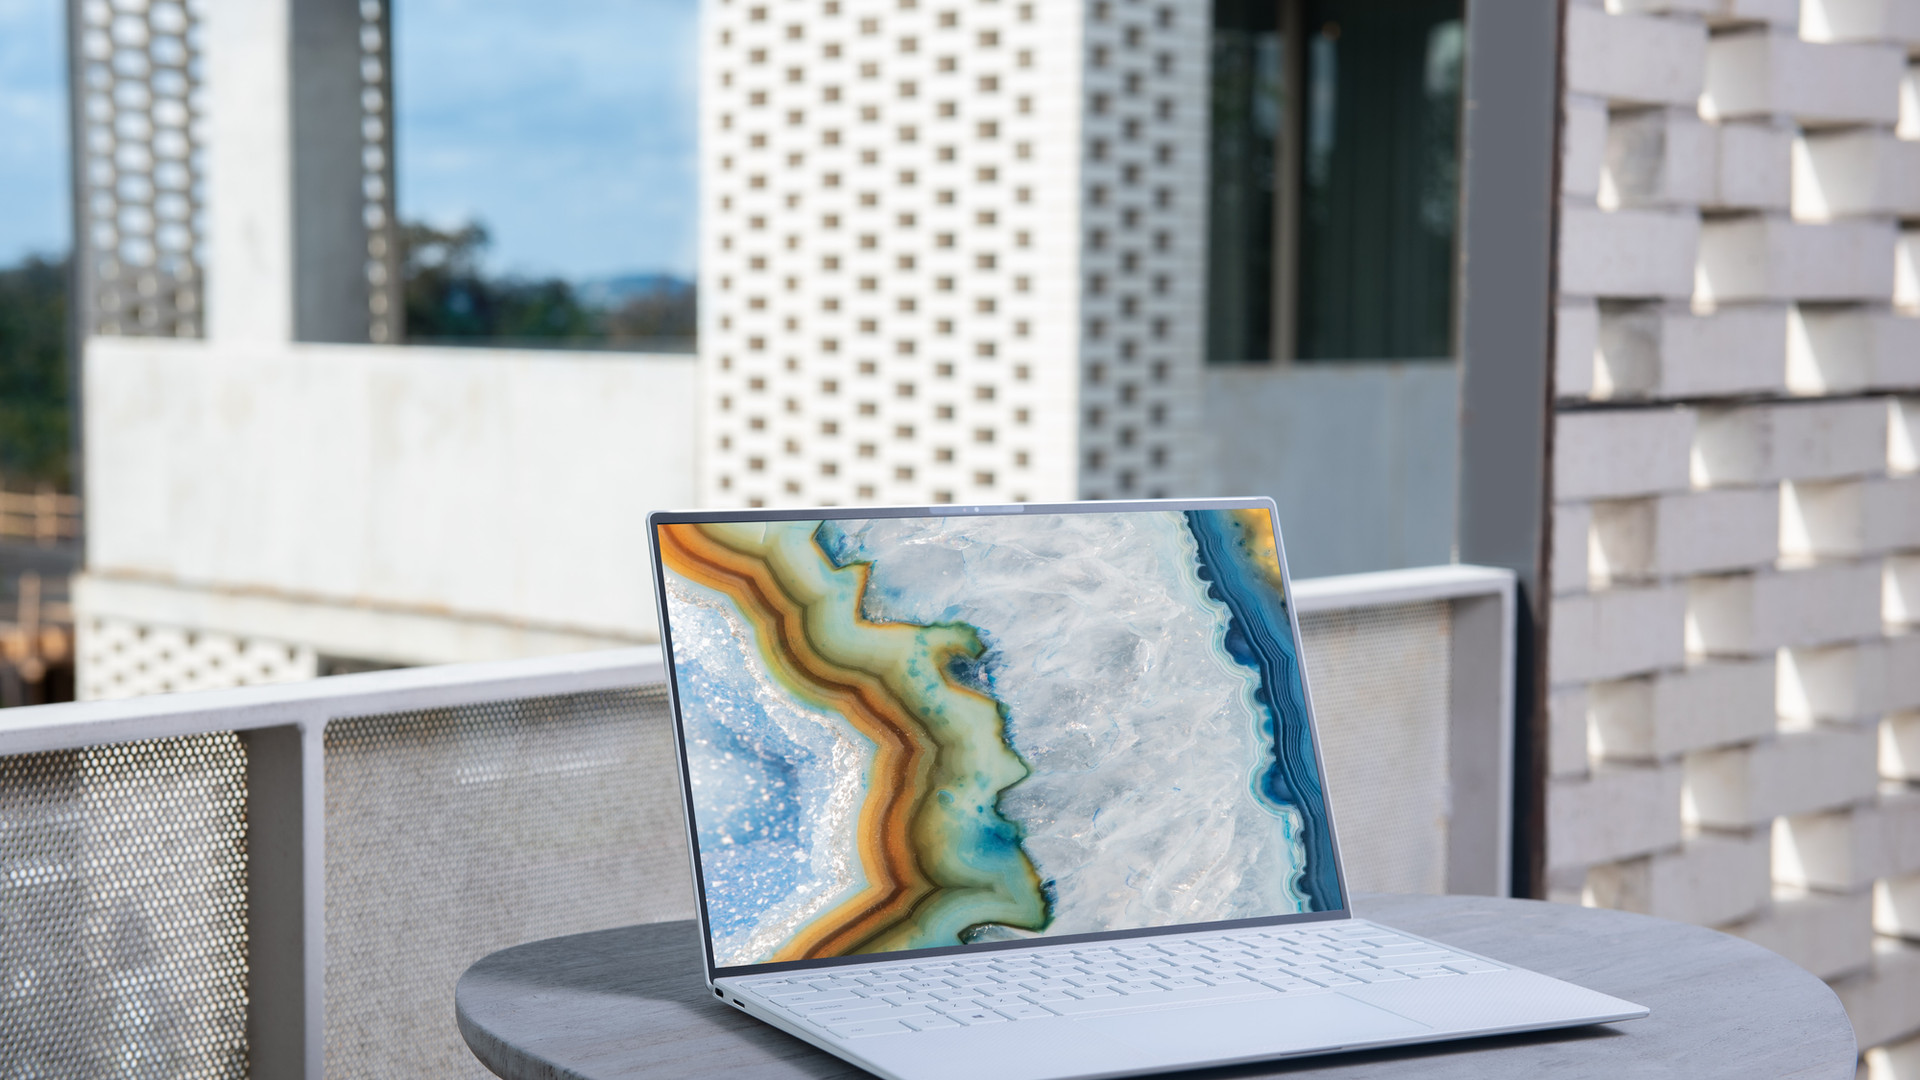 Dell XPS with graphics work open